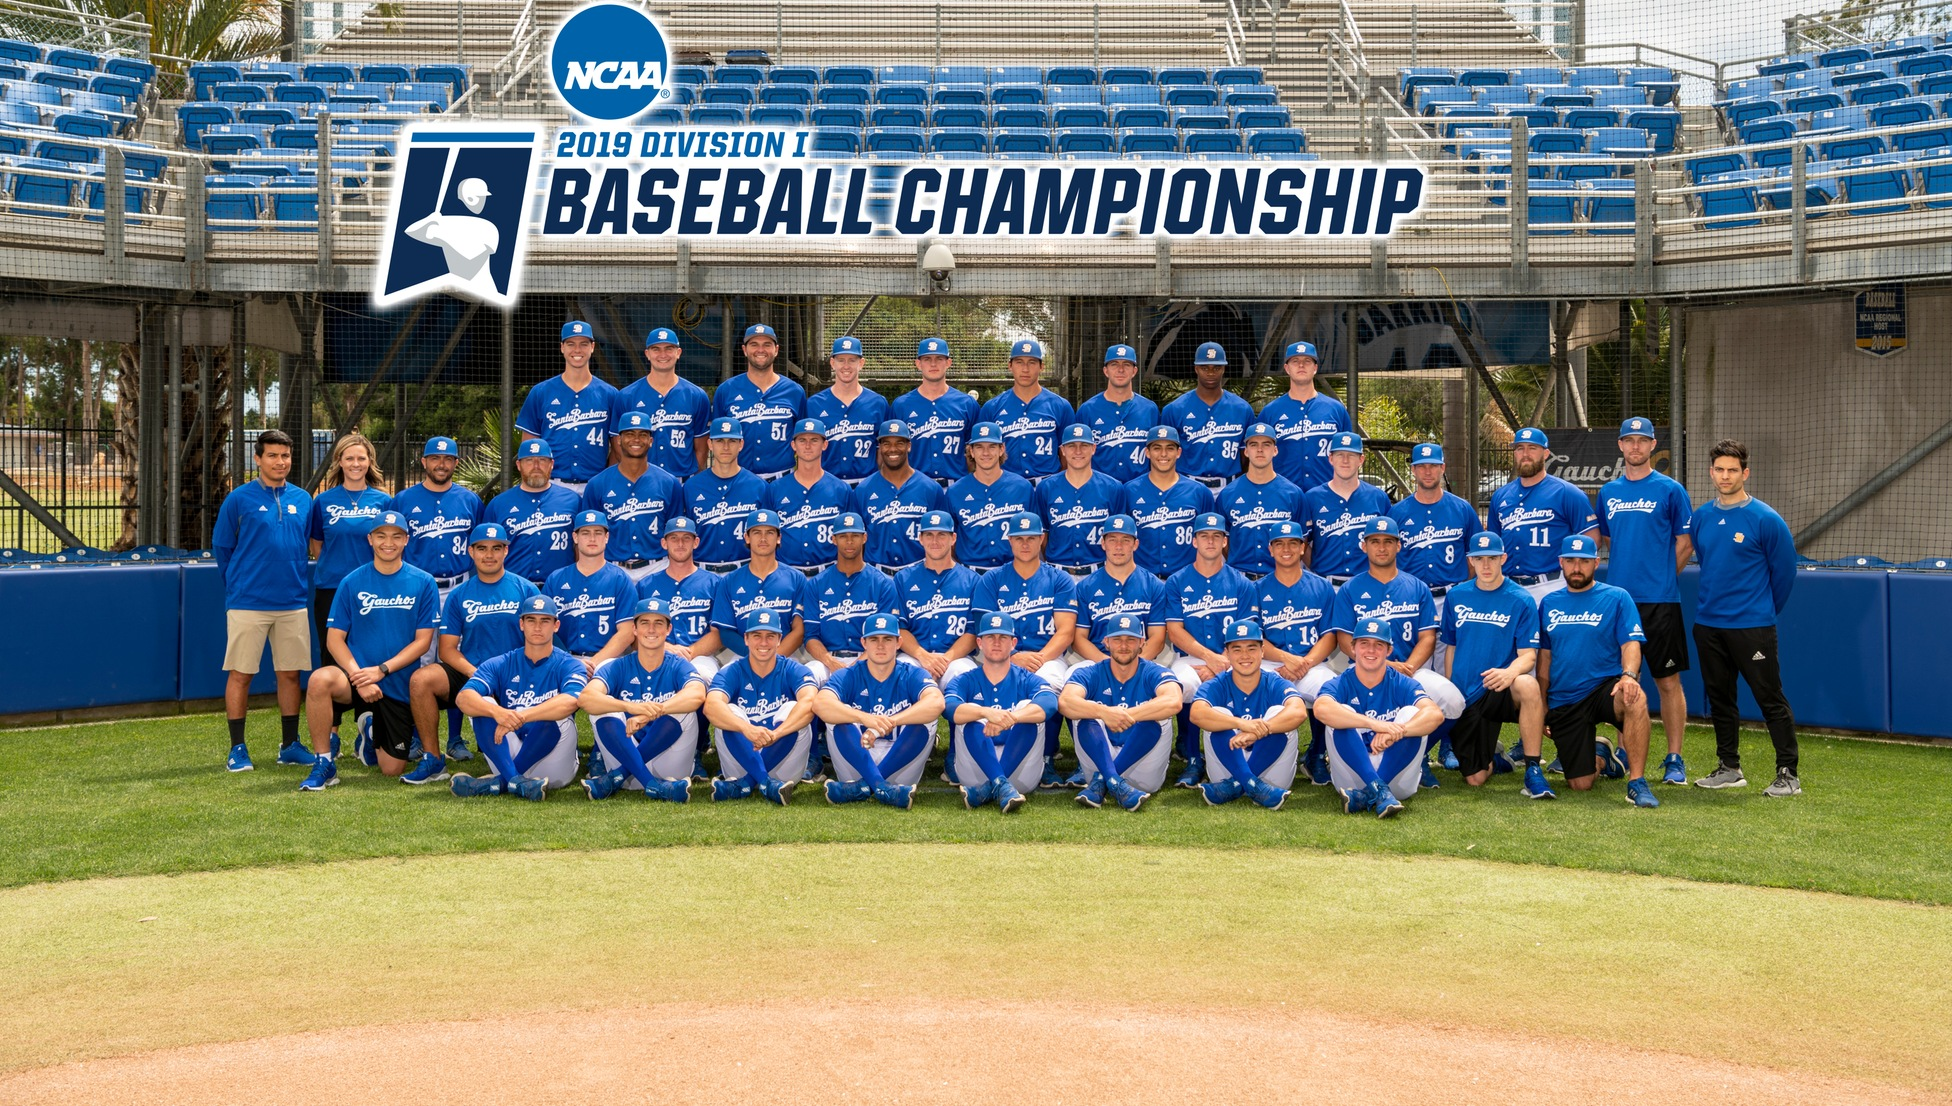 No. 2 Seed UCSB Begins World Series Quest at Stanford Regional